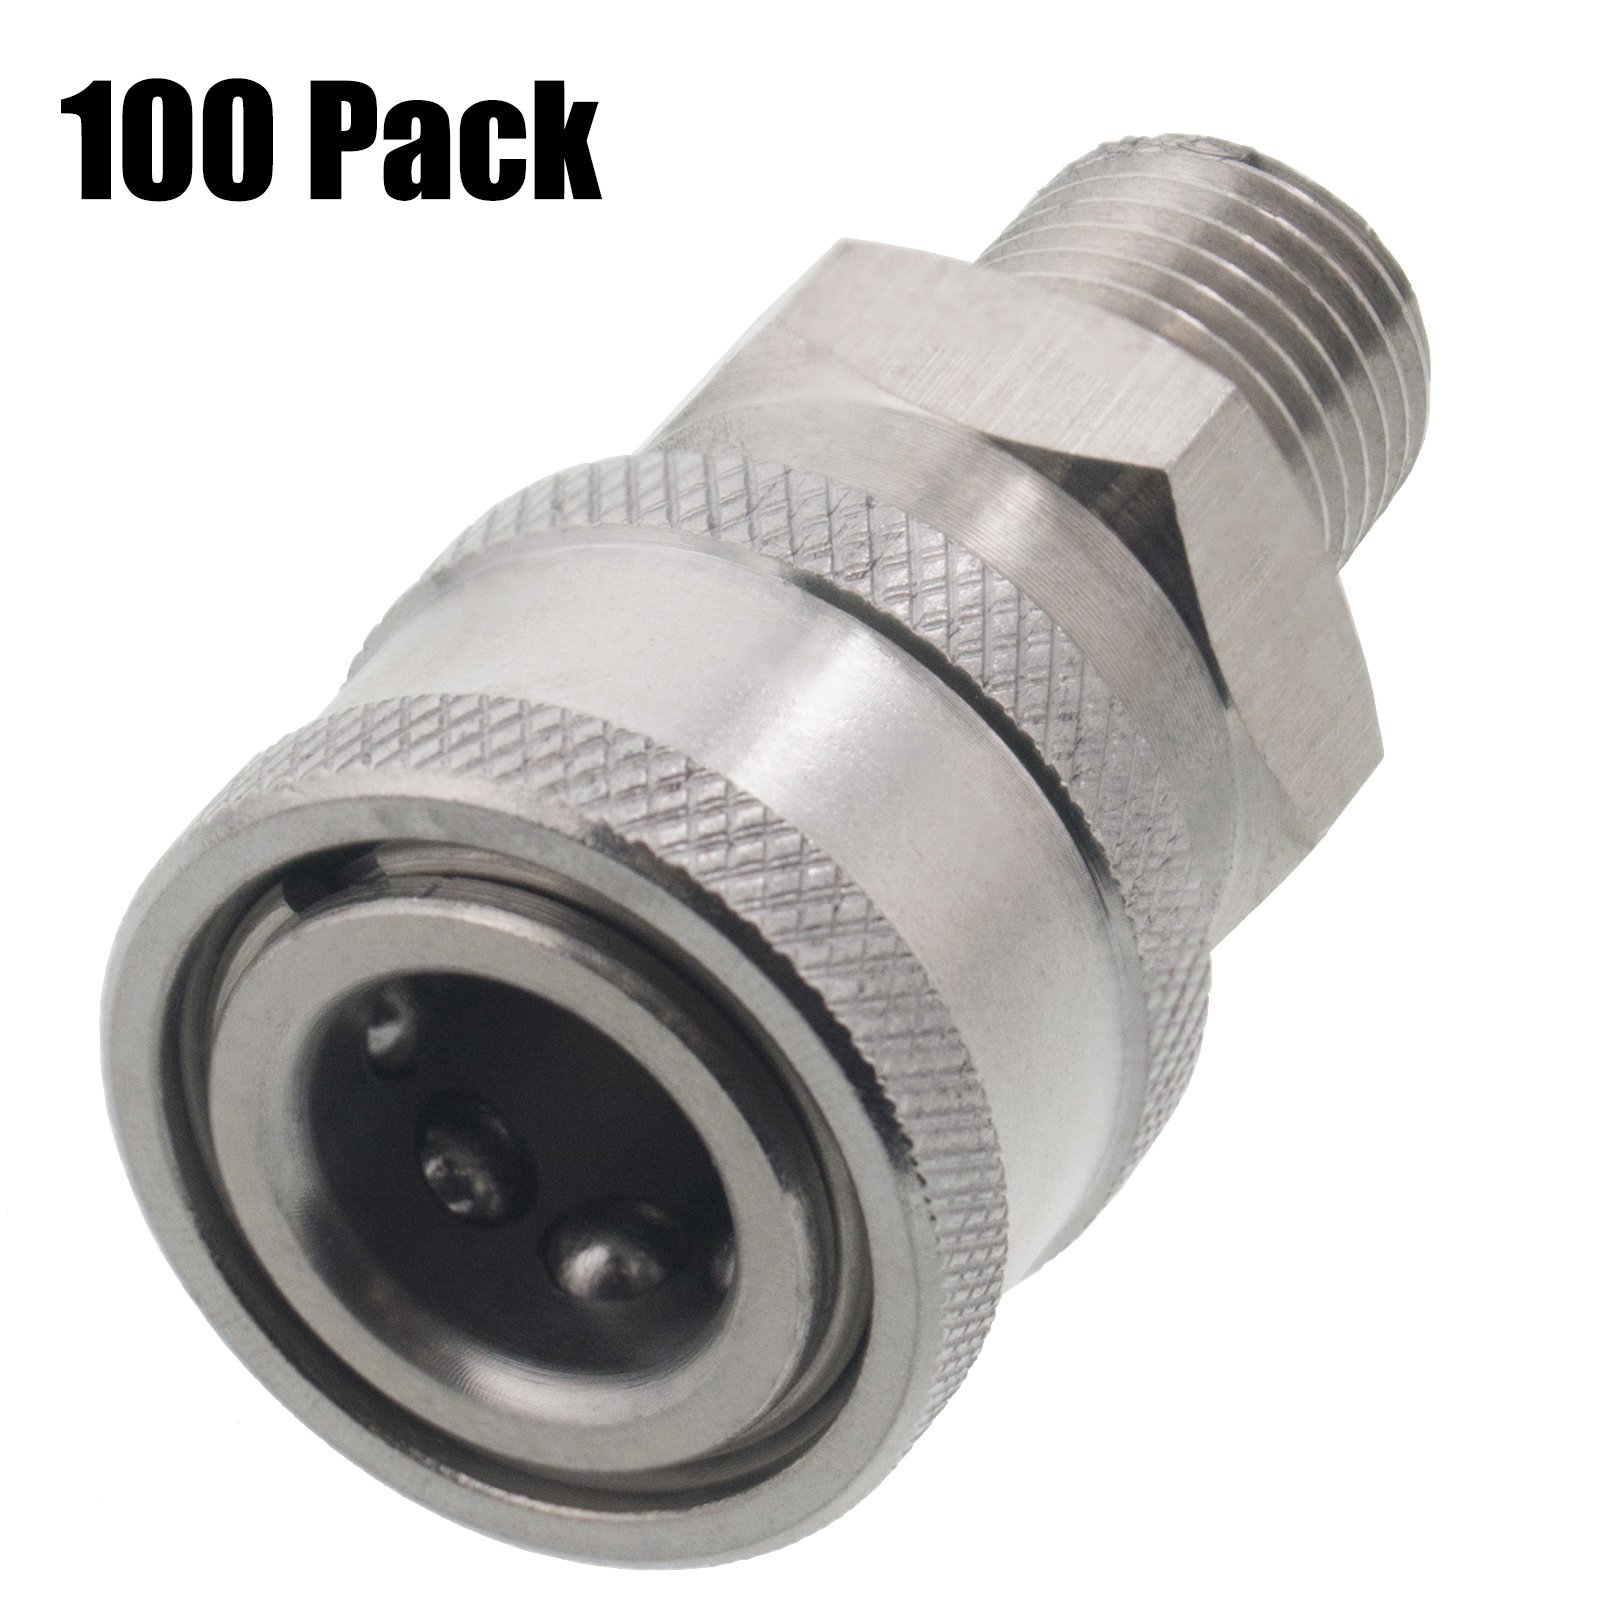 Erie Tools 100 Pressure Washer 1/4in. Male NPT to Quick Connect Socket Stainless Steel Coupler High Temp 5000 PSI 10.5 GPM